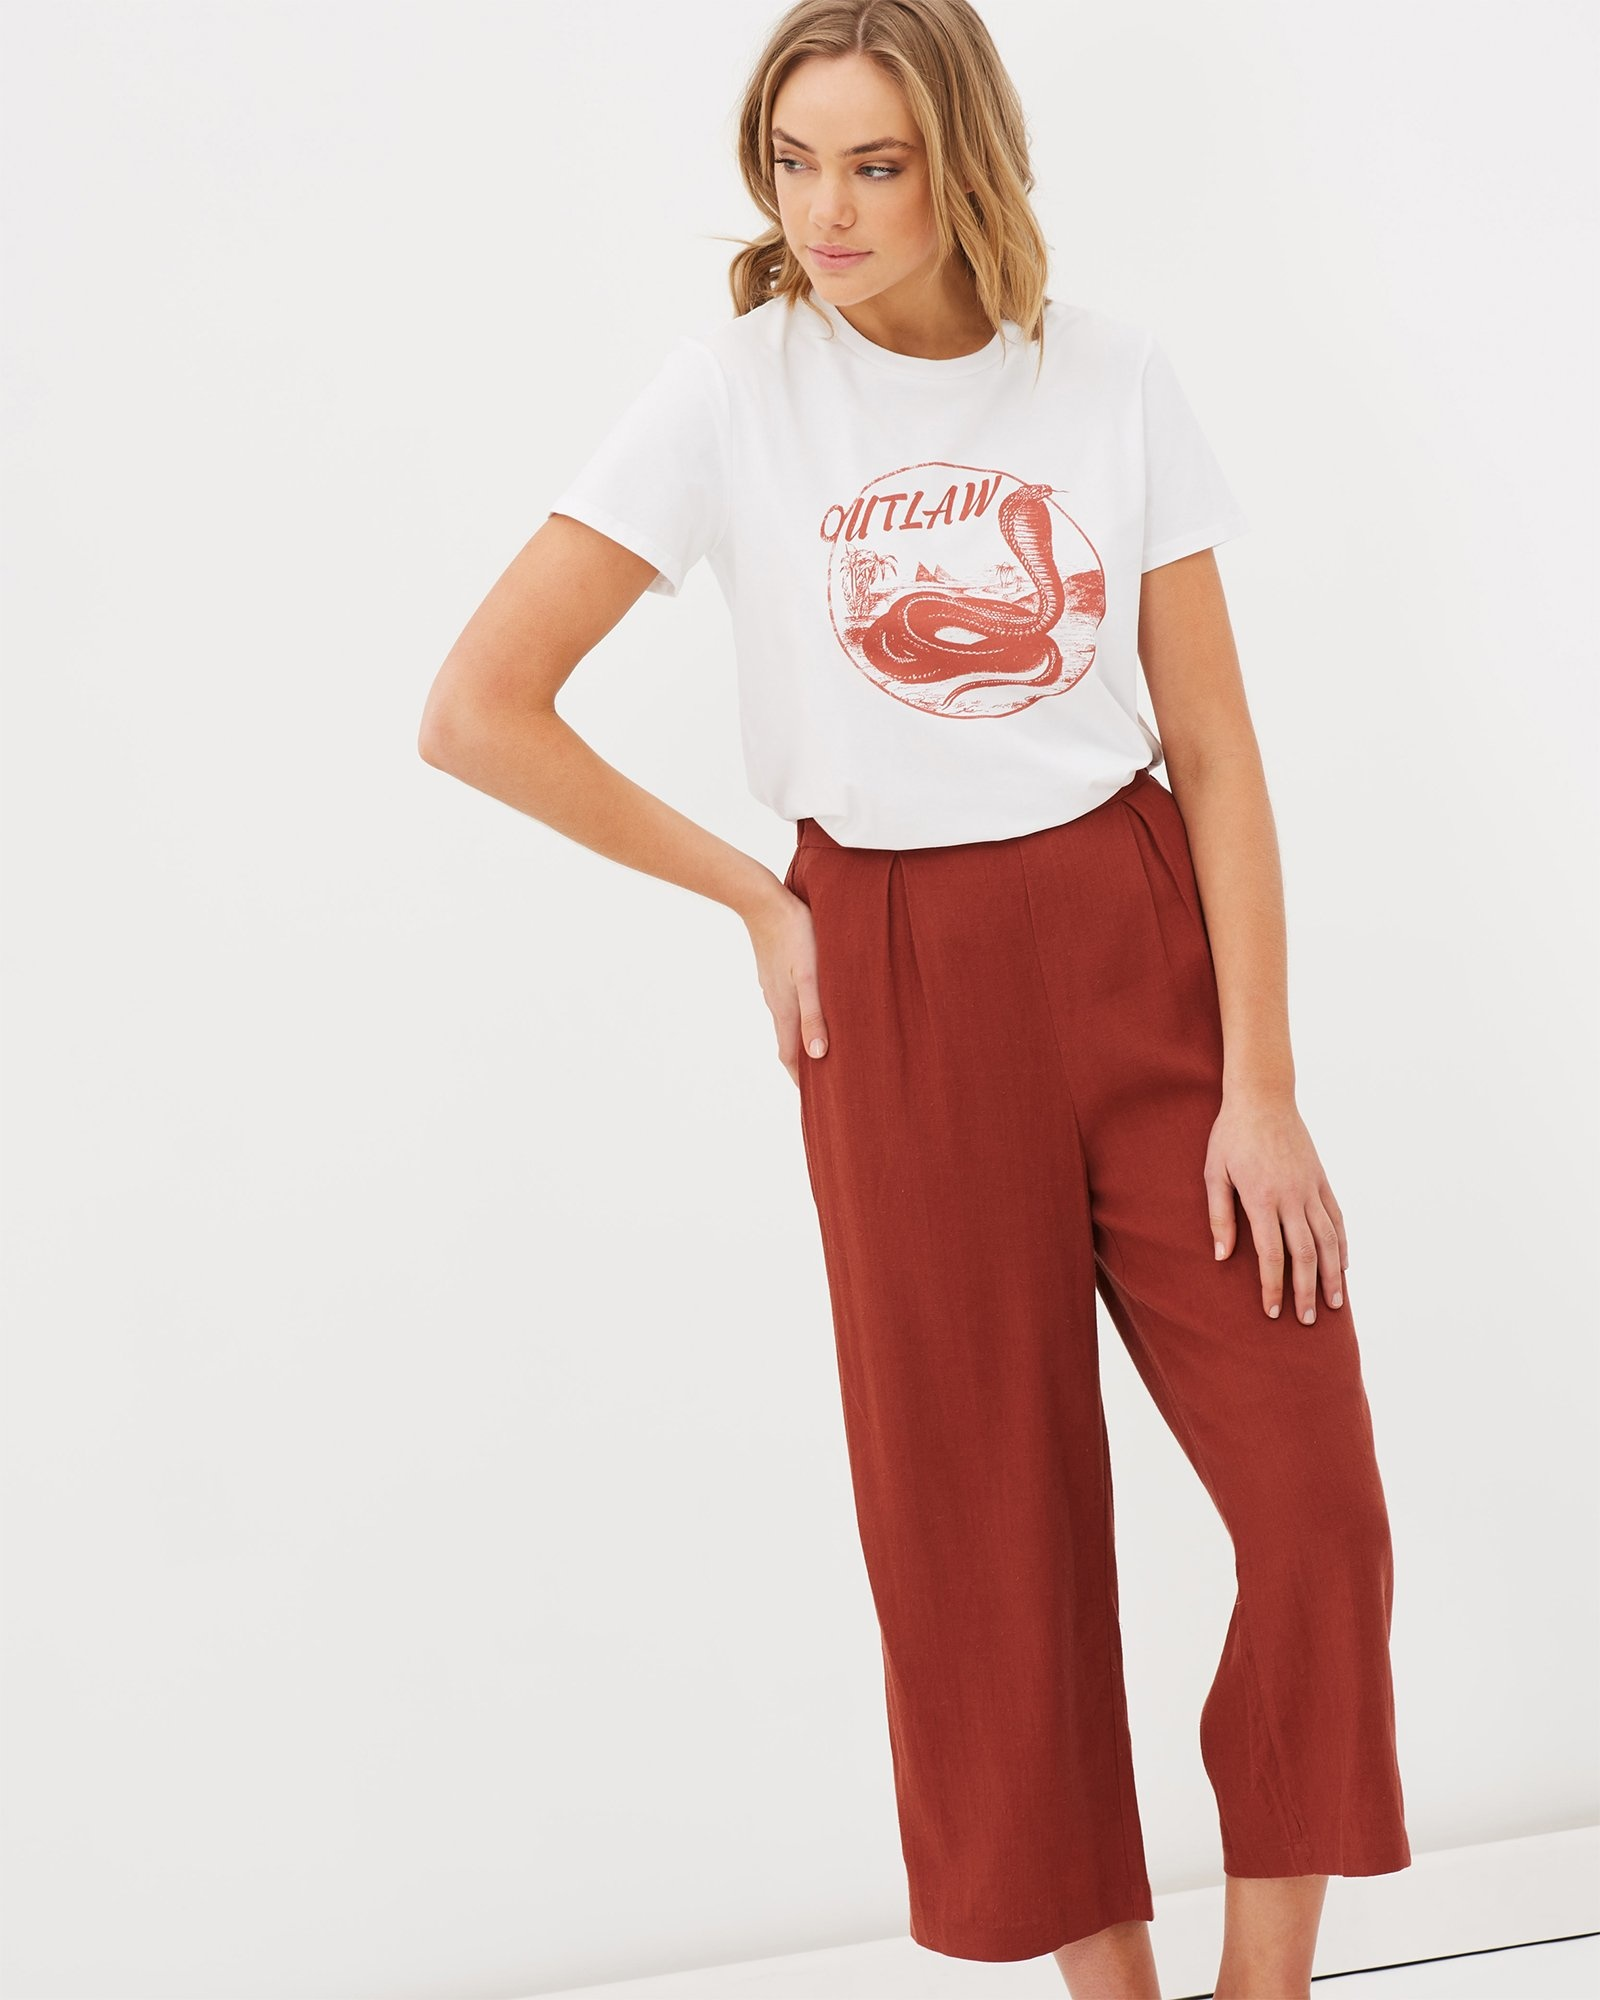 Charlie Holiday Outlaw Regular Fit Tee